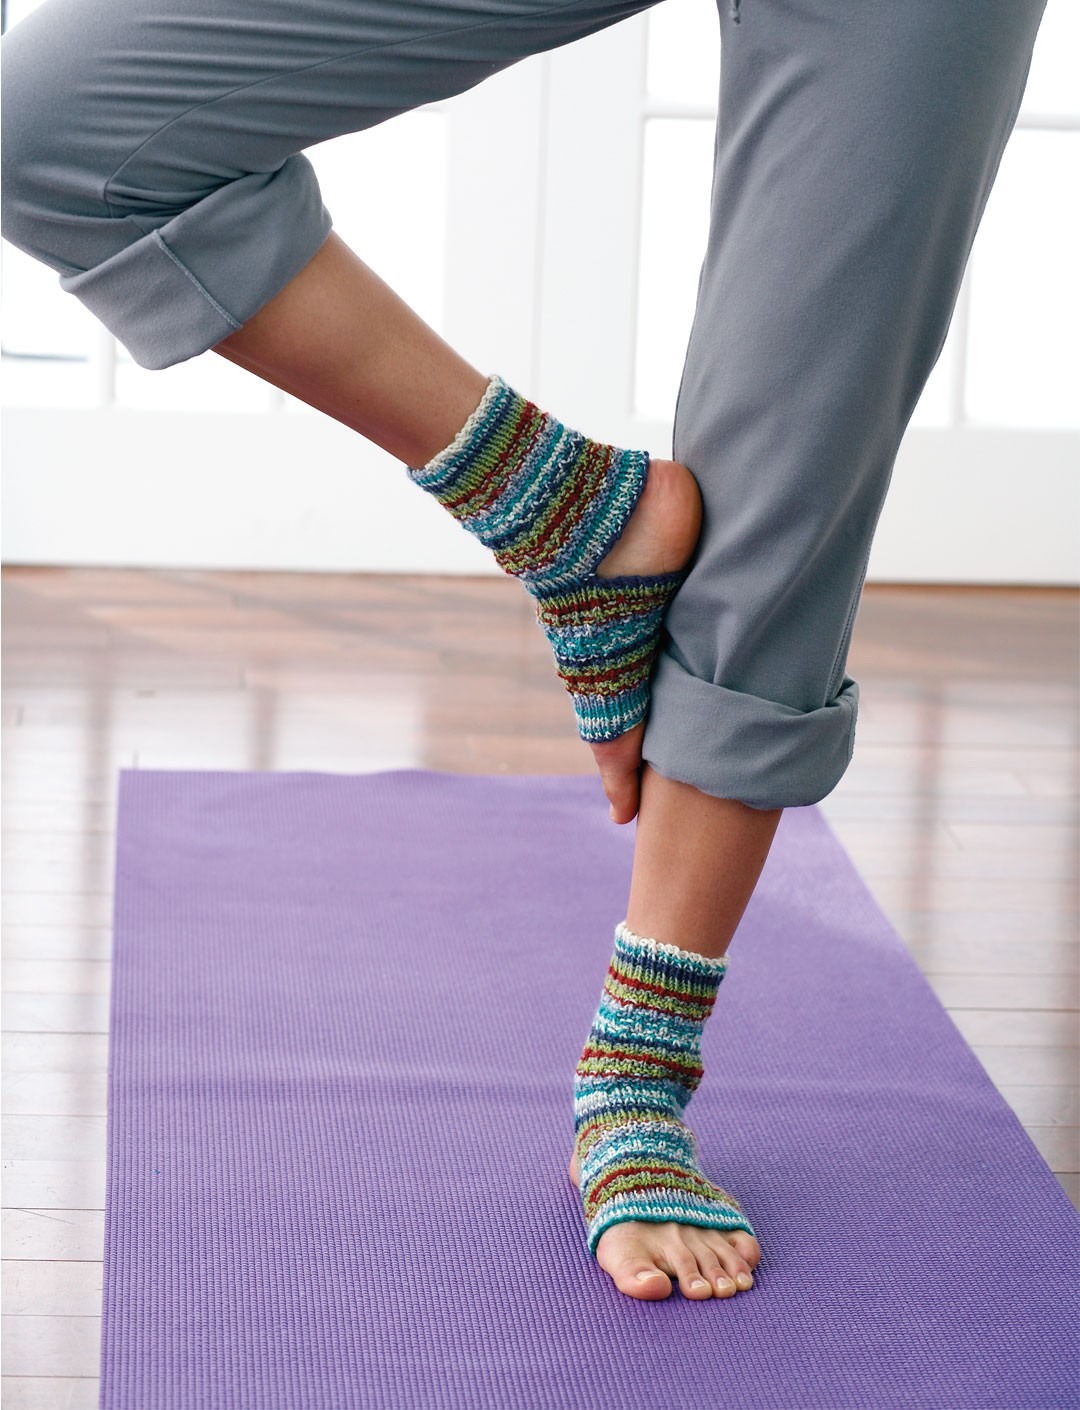 Crochet Pattern Yoga Socks : Yoga Socks - Patterns Yarnspirations